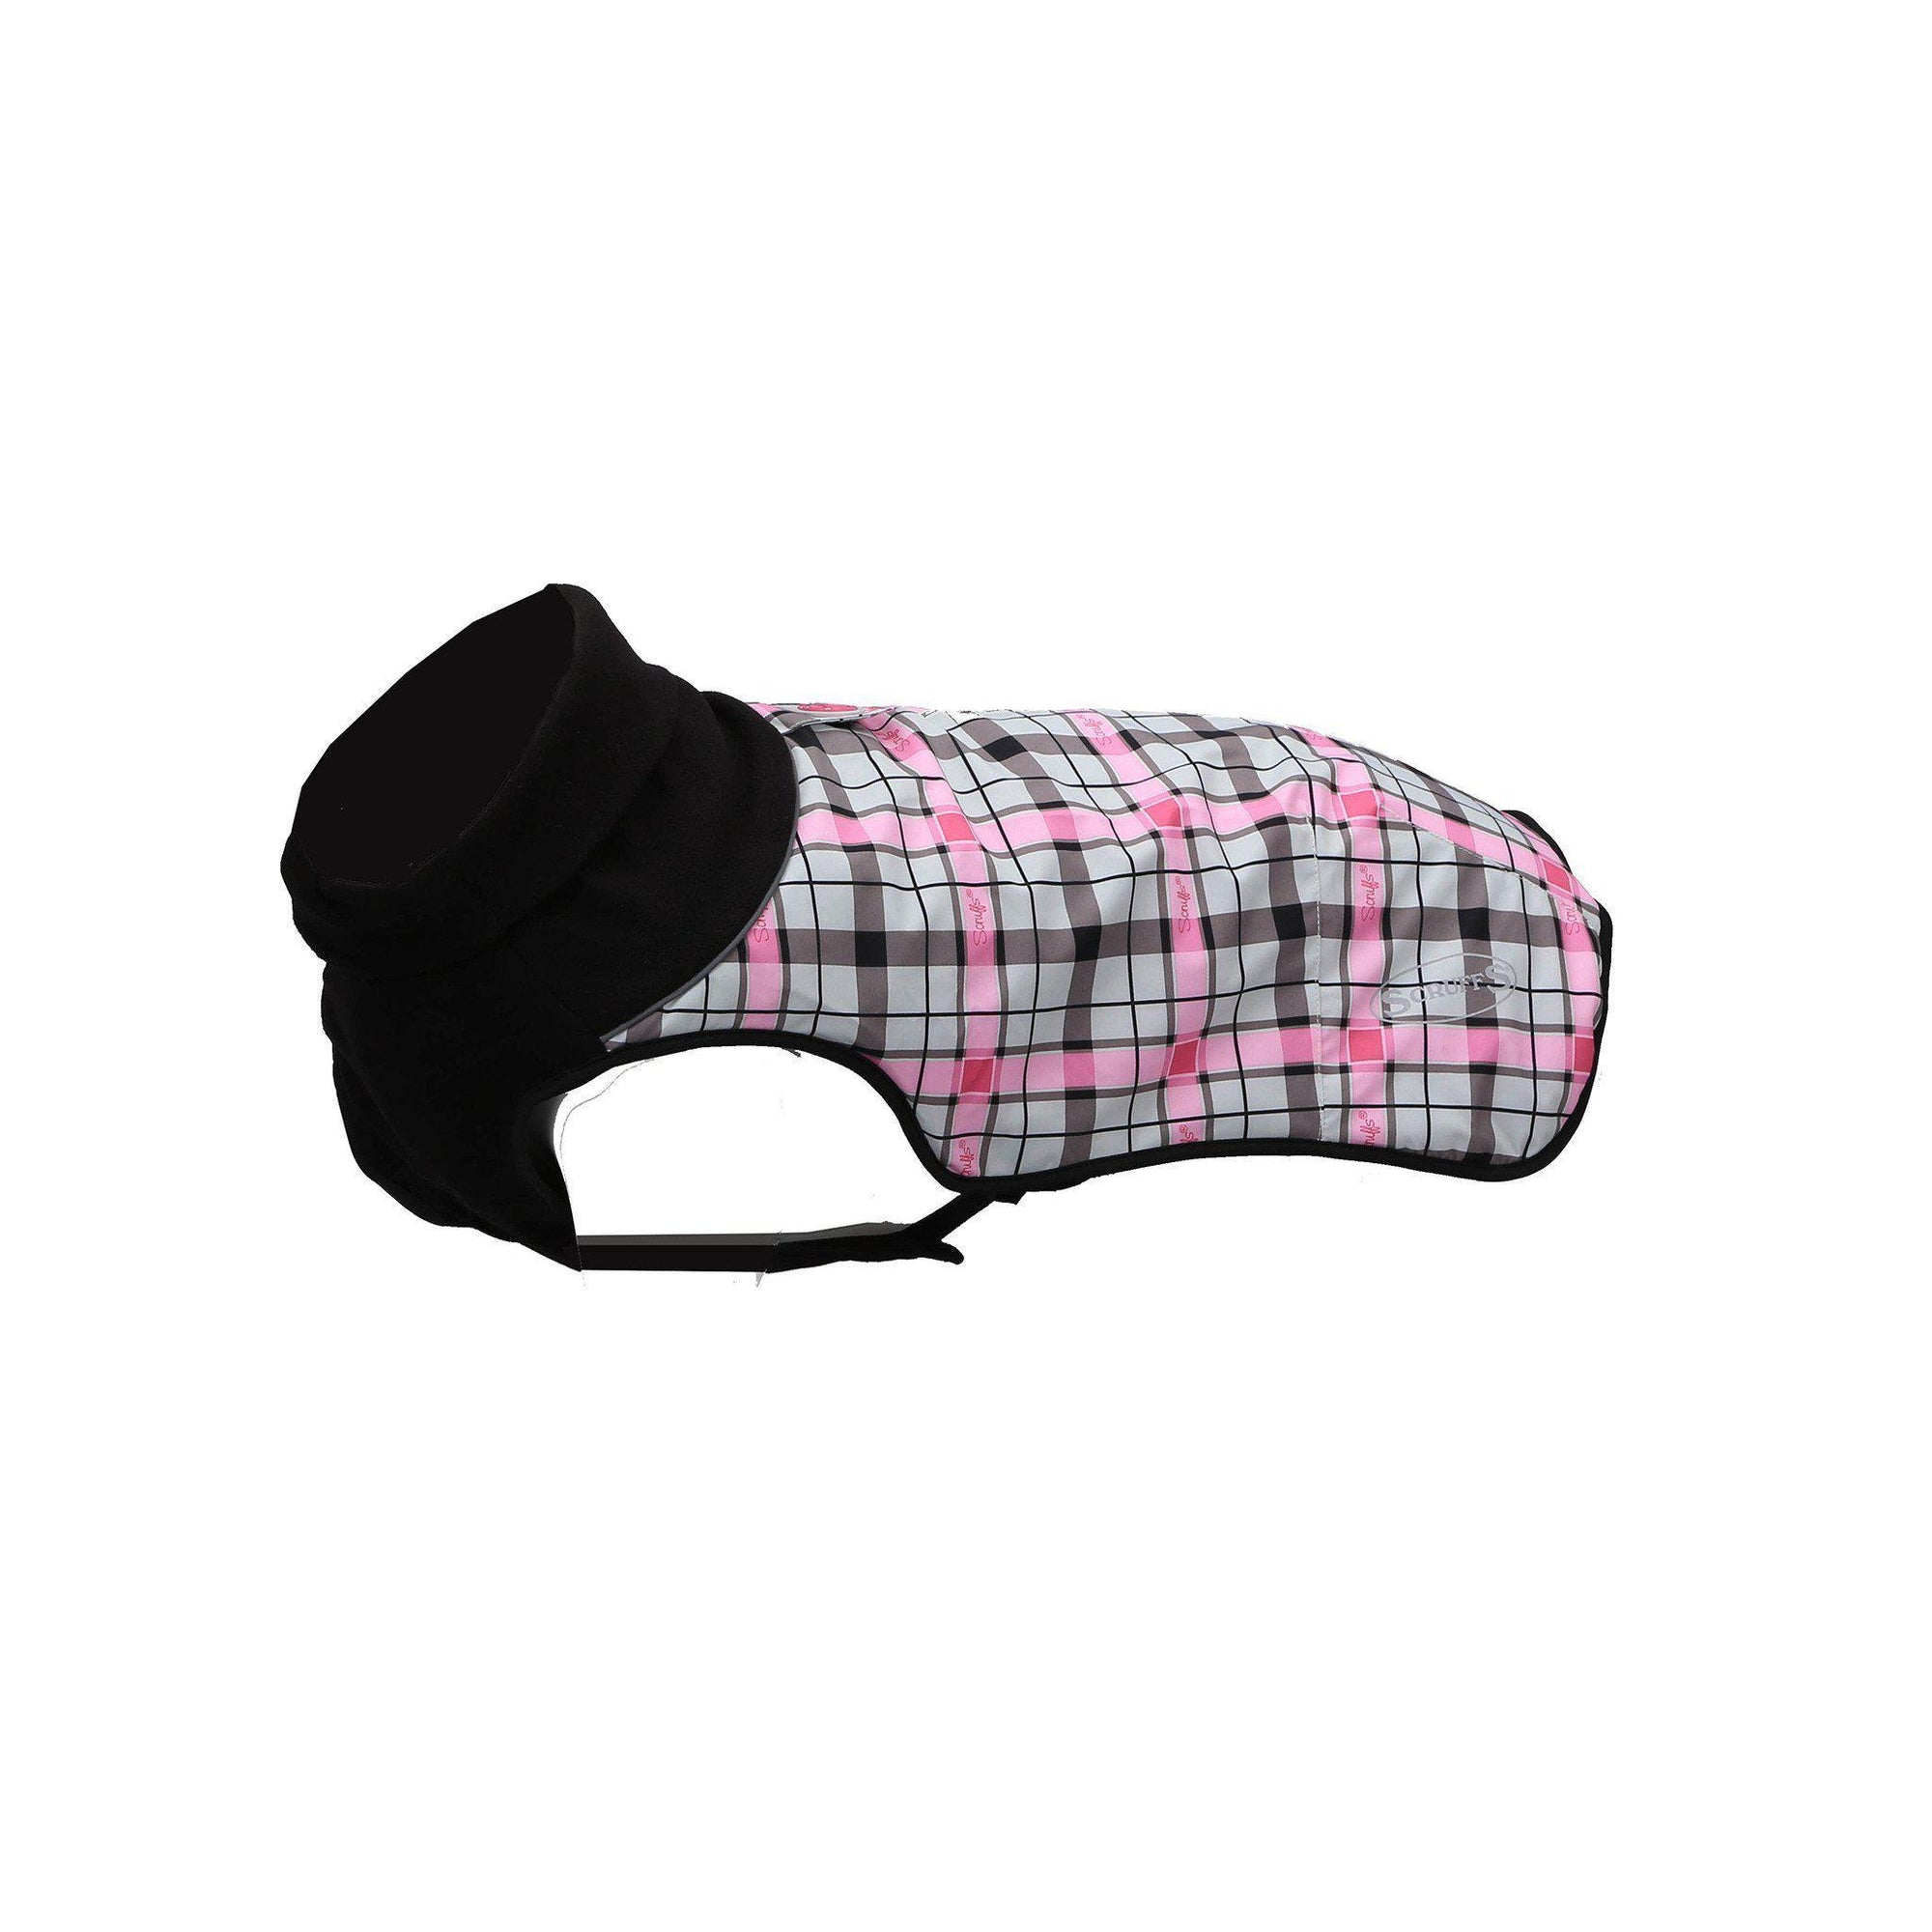 Scruffs Thermal Dog Coat - Calamity Jane - ComfyPet Products